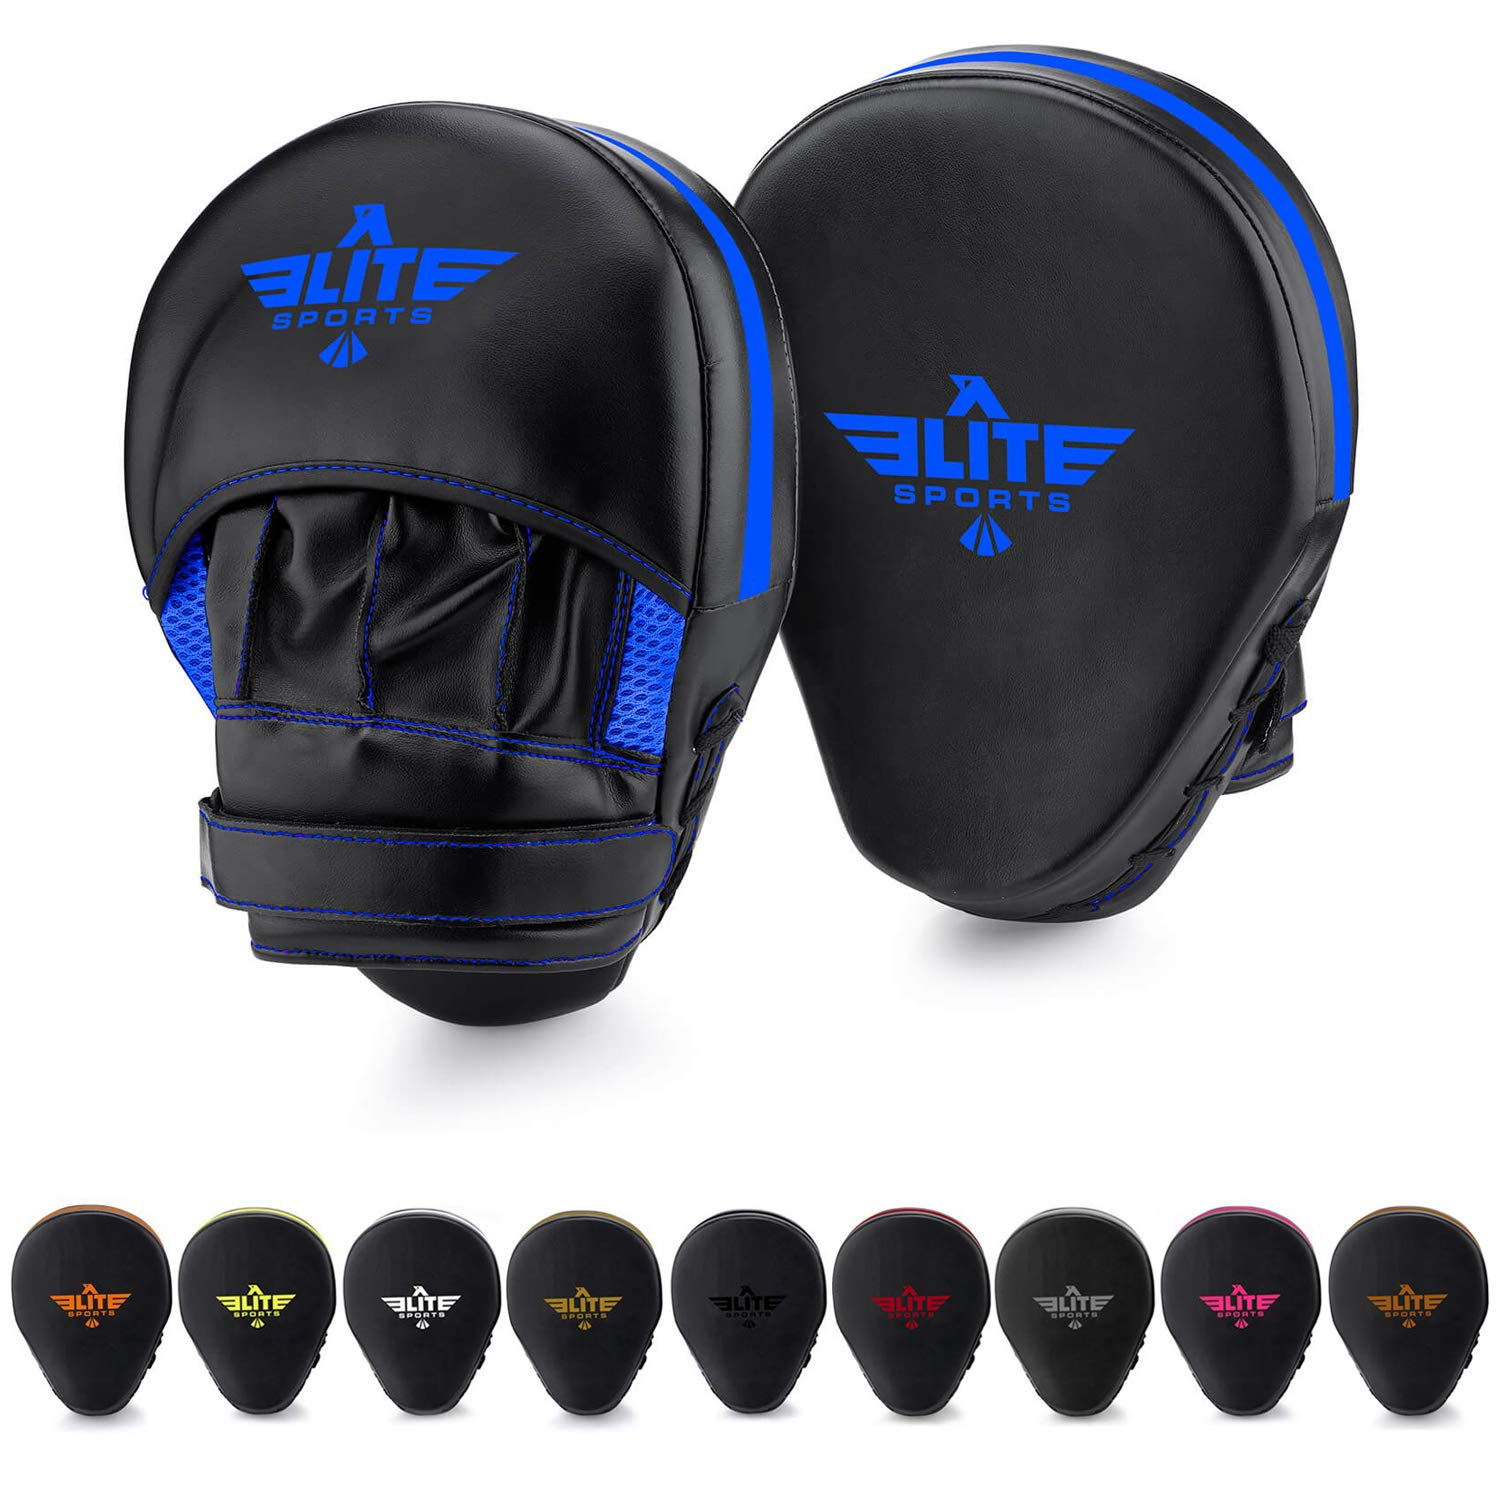 Kickboxing Elite Sports Boxing Punch Focus Mitts Muay Thai Sparring for MMA